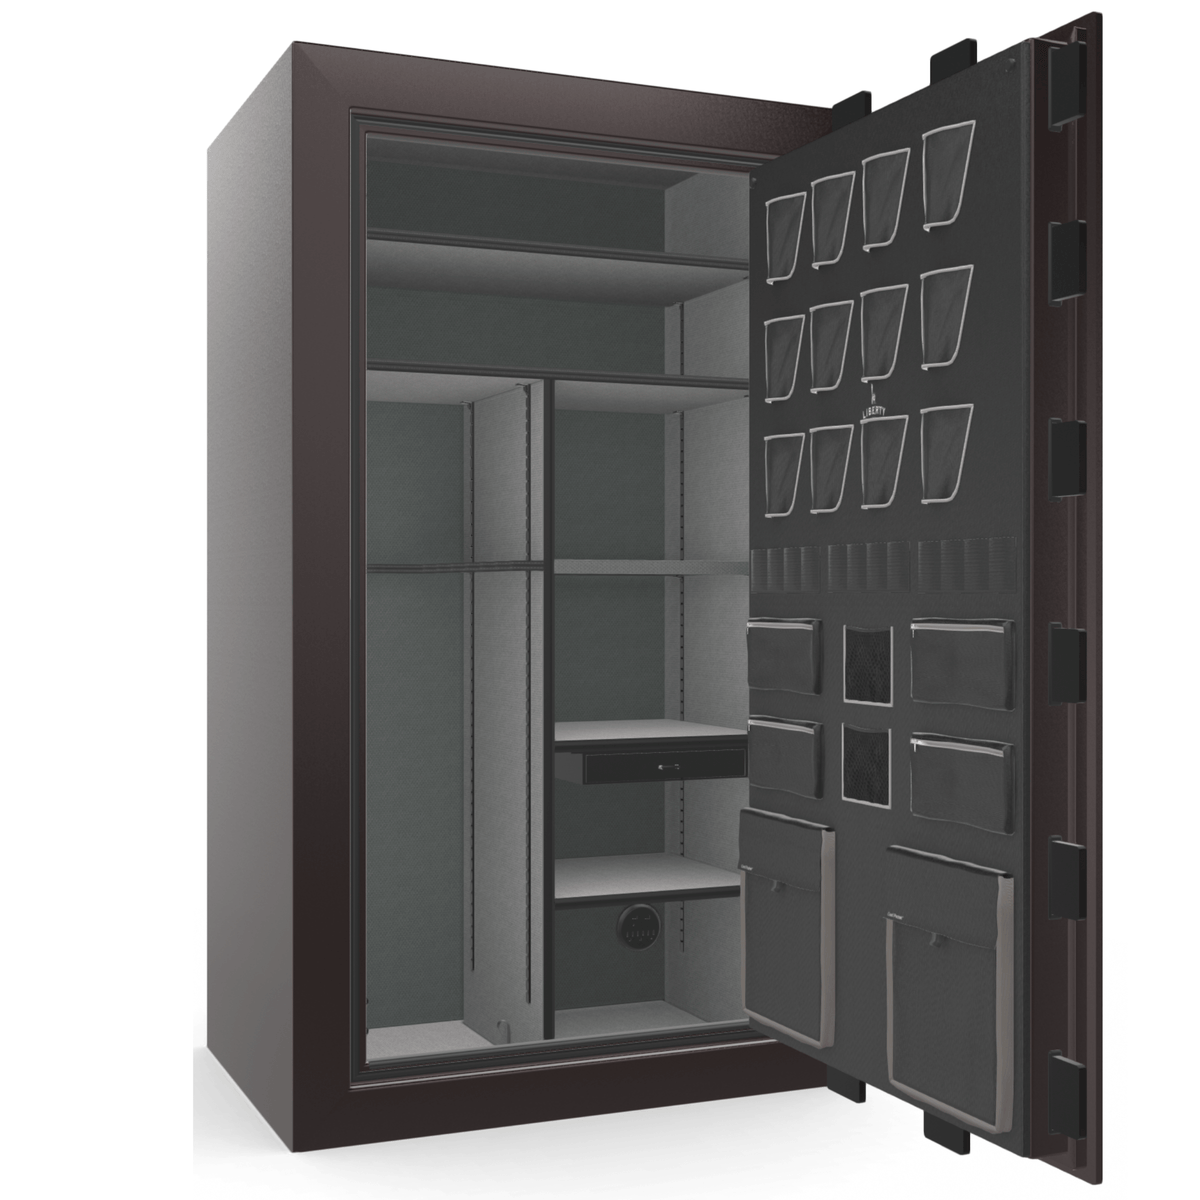 "Classic Plus | 50 | Level 7 Security | 110 Minute Fire Protection | Black Cherry Gloss | Black Electronic Lock | 72.5""(H) x 42""(W) x 32""(D)"